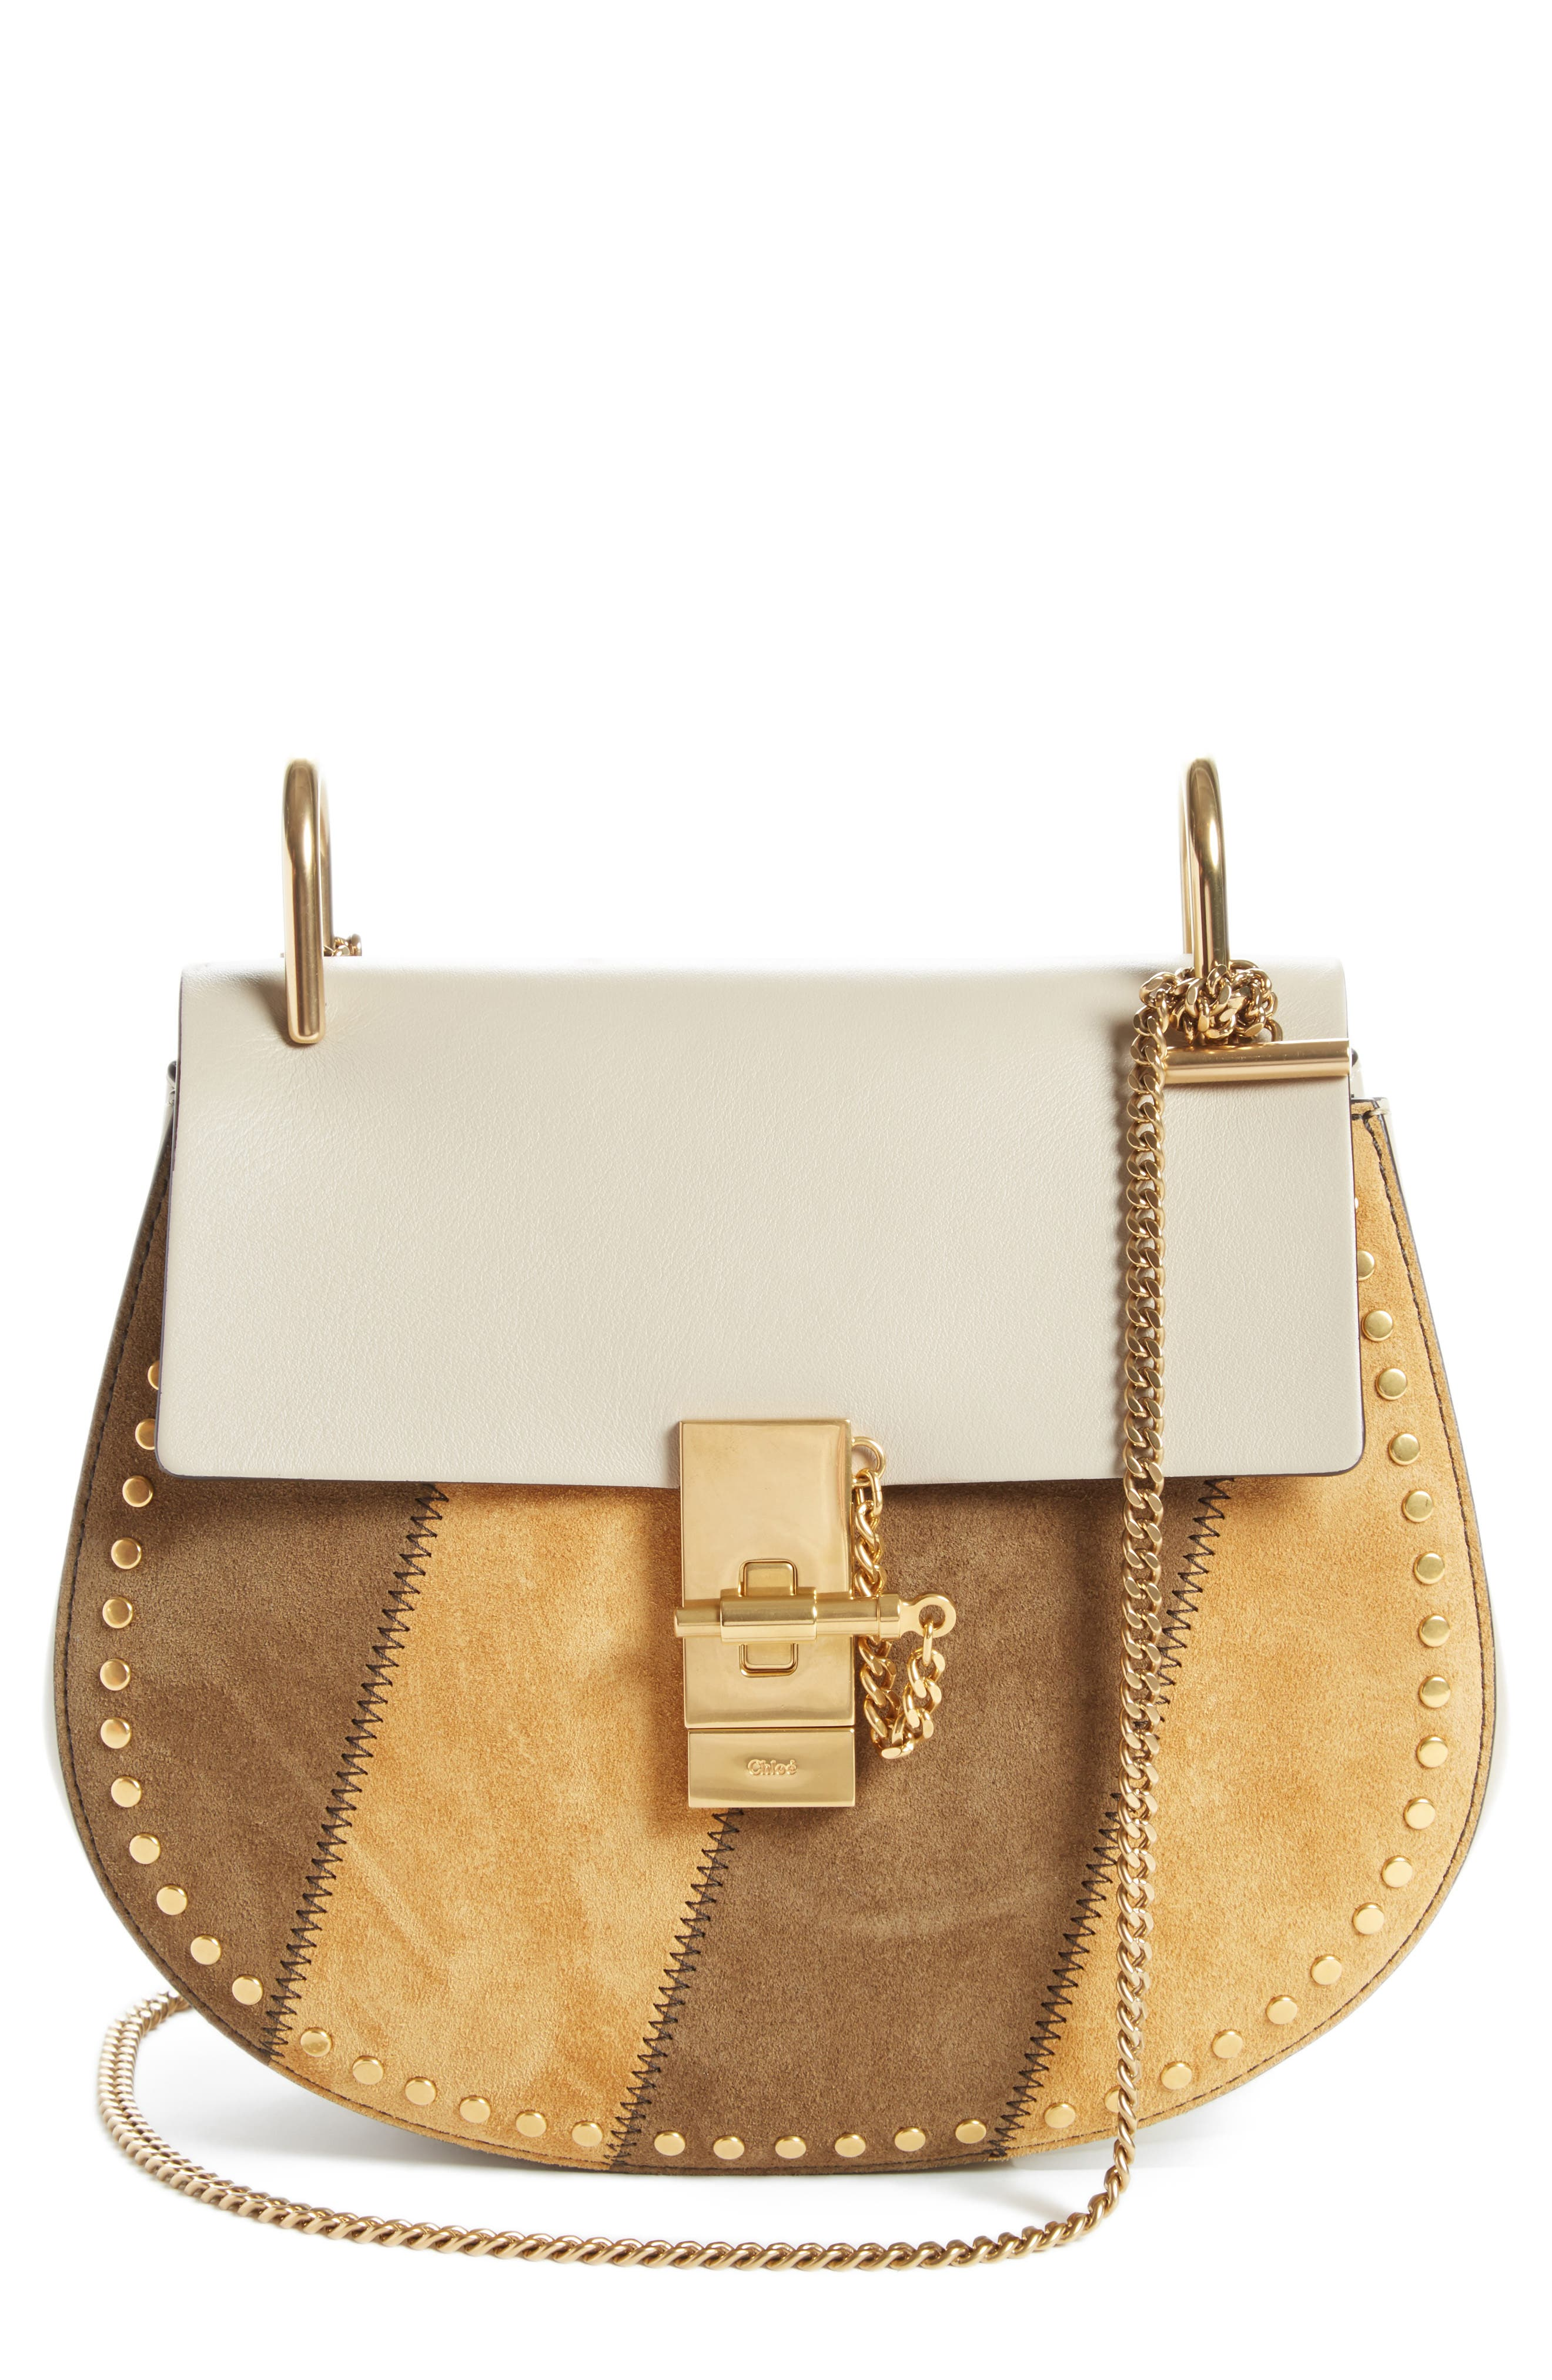 Chloé Handbags, Purses & Wallets | Nordstrom